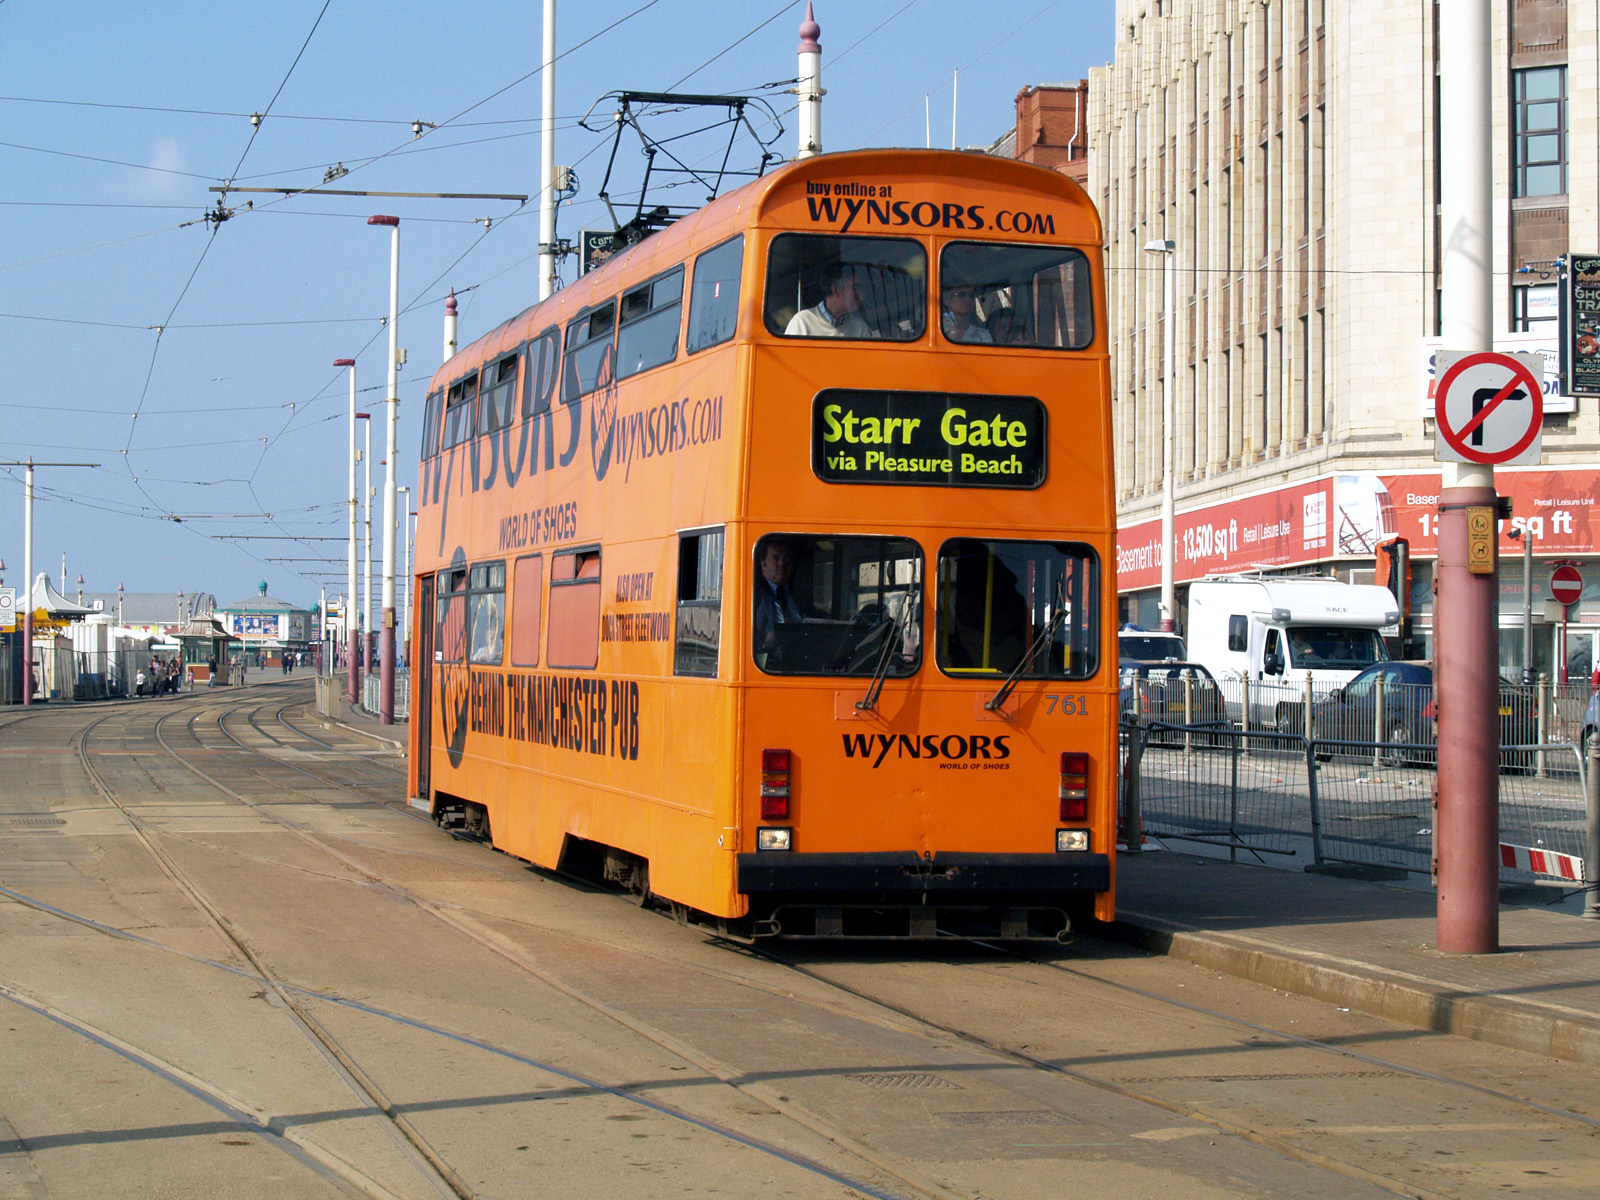 Blackpool Transport Services Limited car number 761.jpg Blackpool Transport Services Limited car number 761, a Blackpool Borough Council Transport ?Jubilee